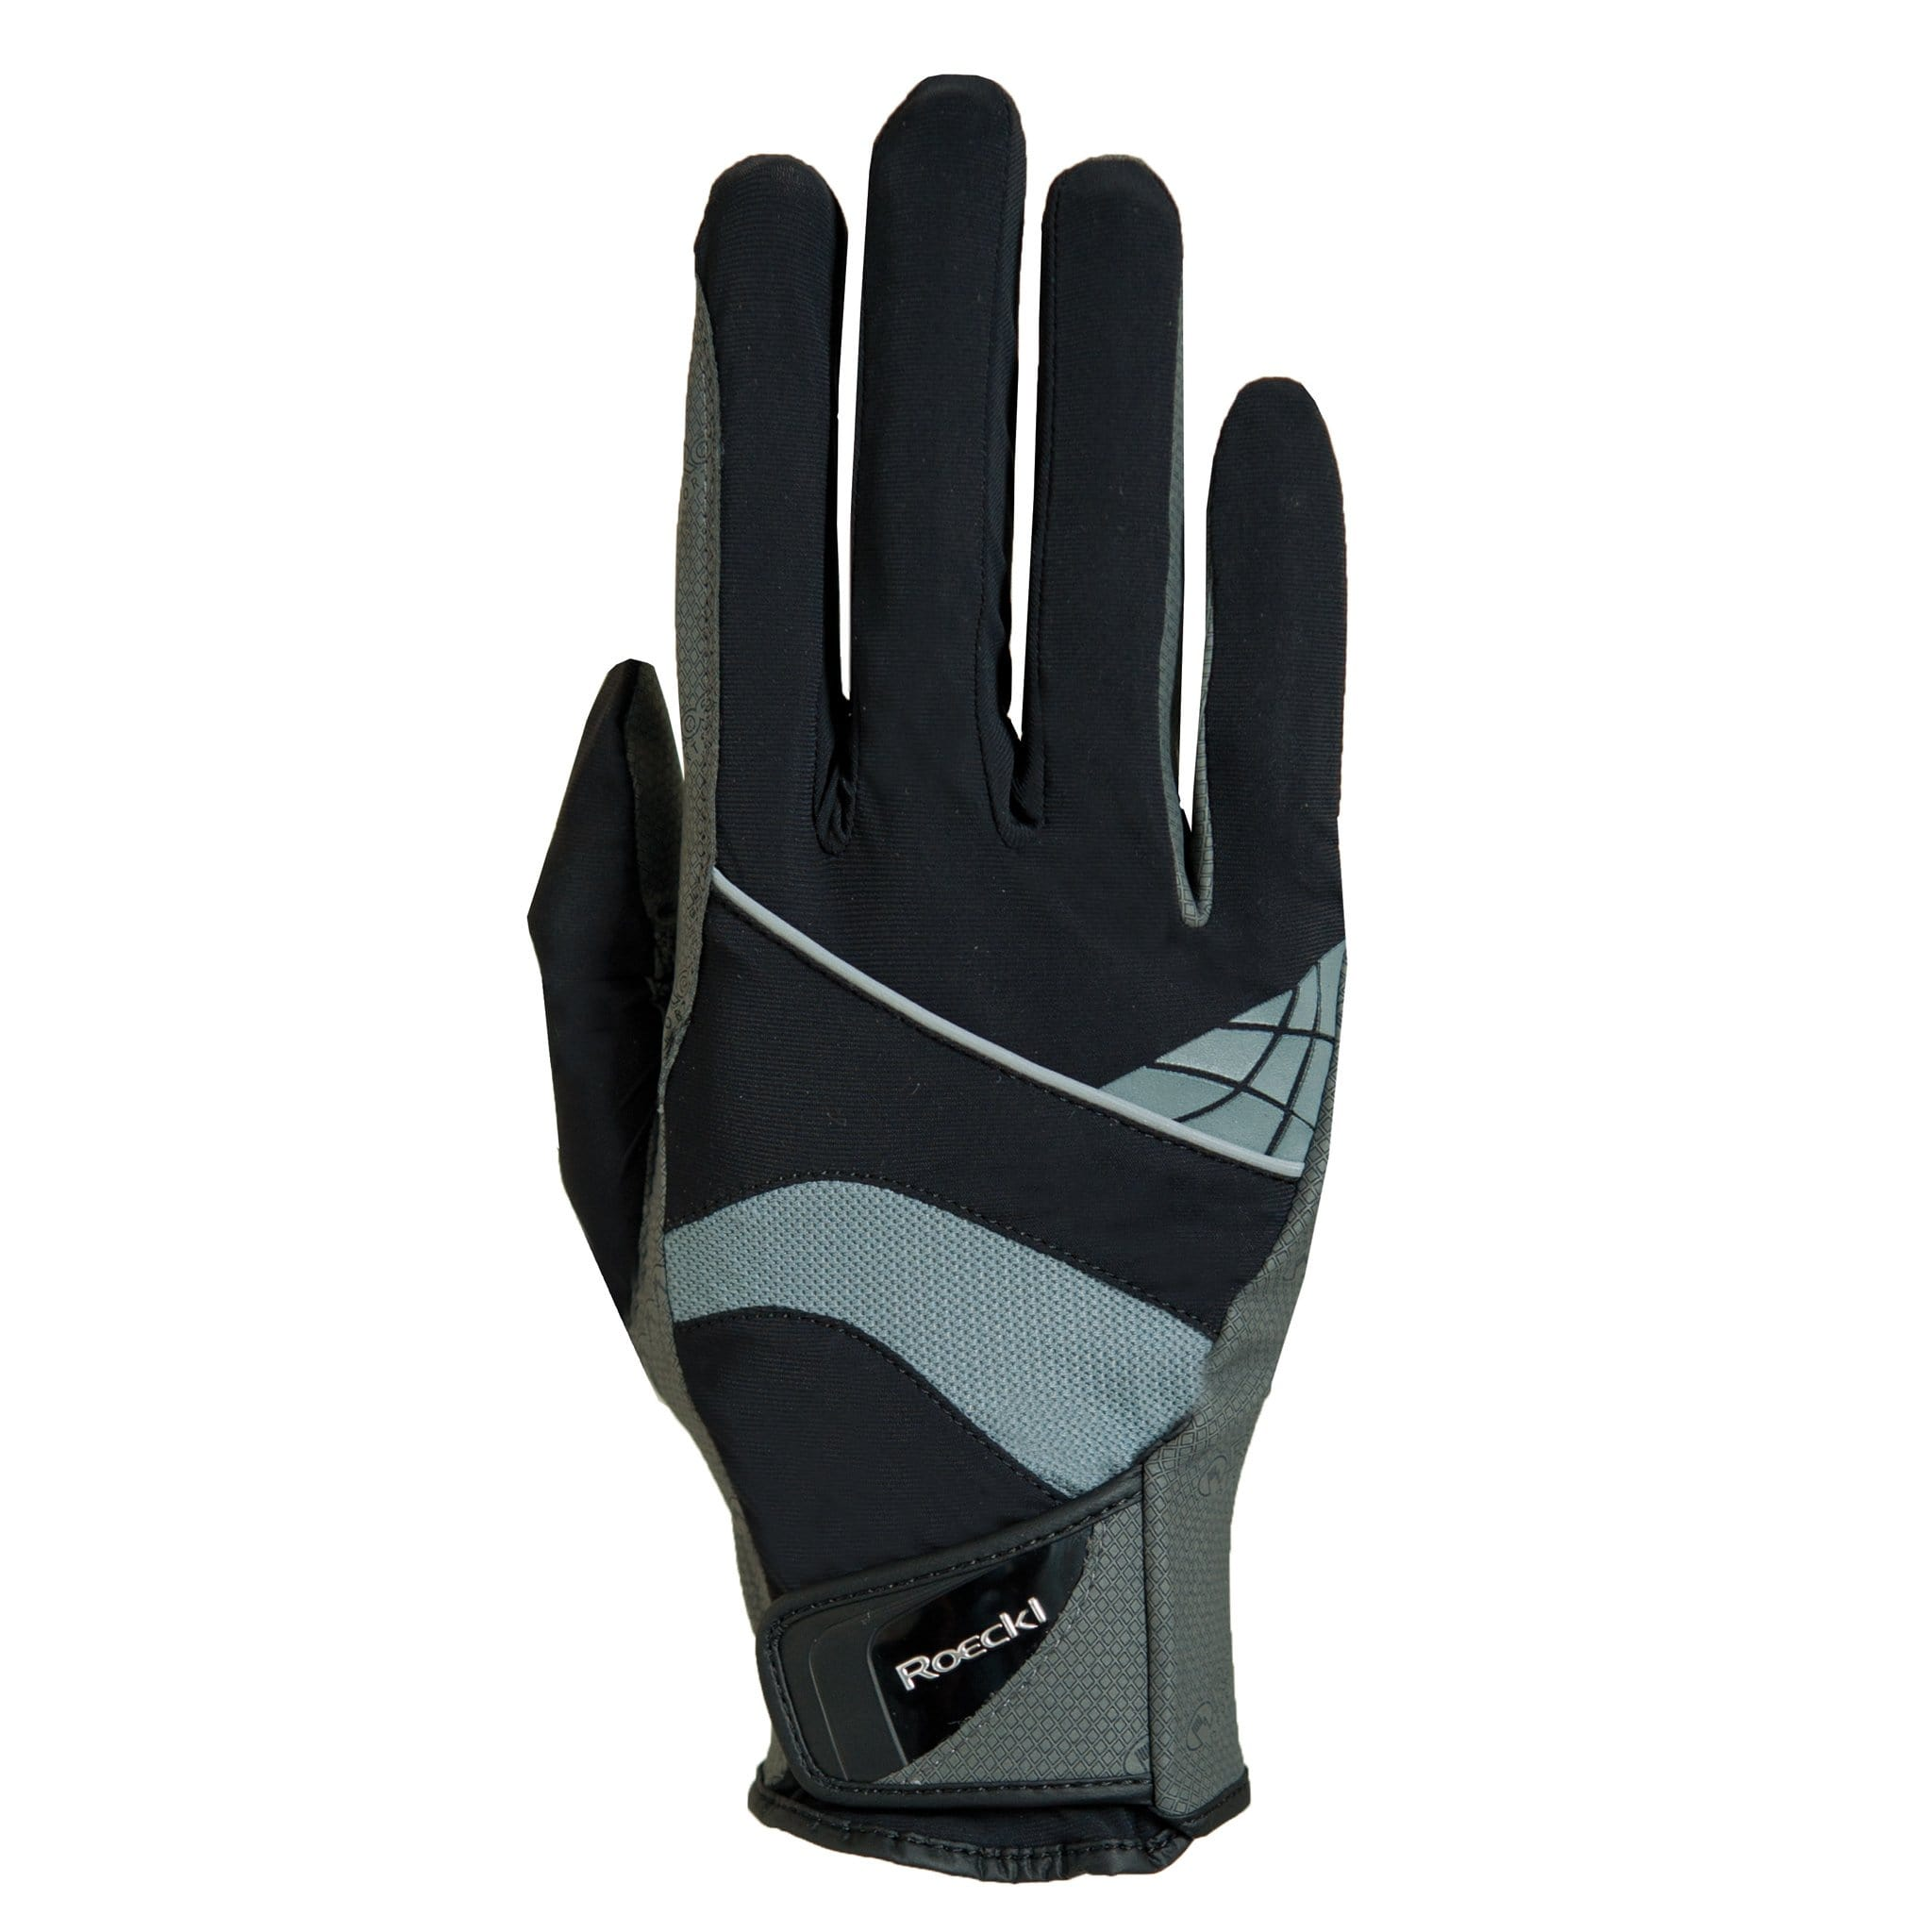 Roeckl Montreal Gloves Black and Grey 3301-273-008